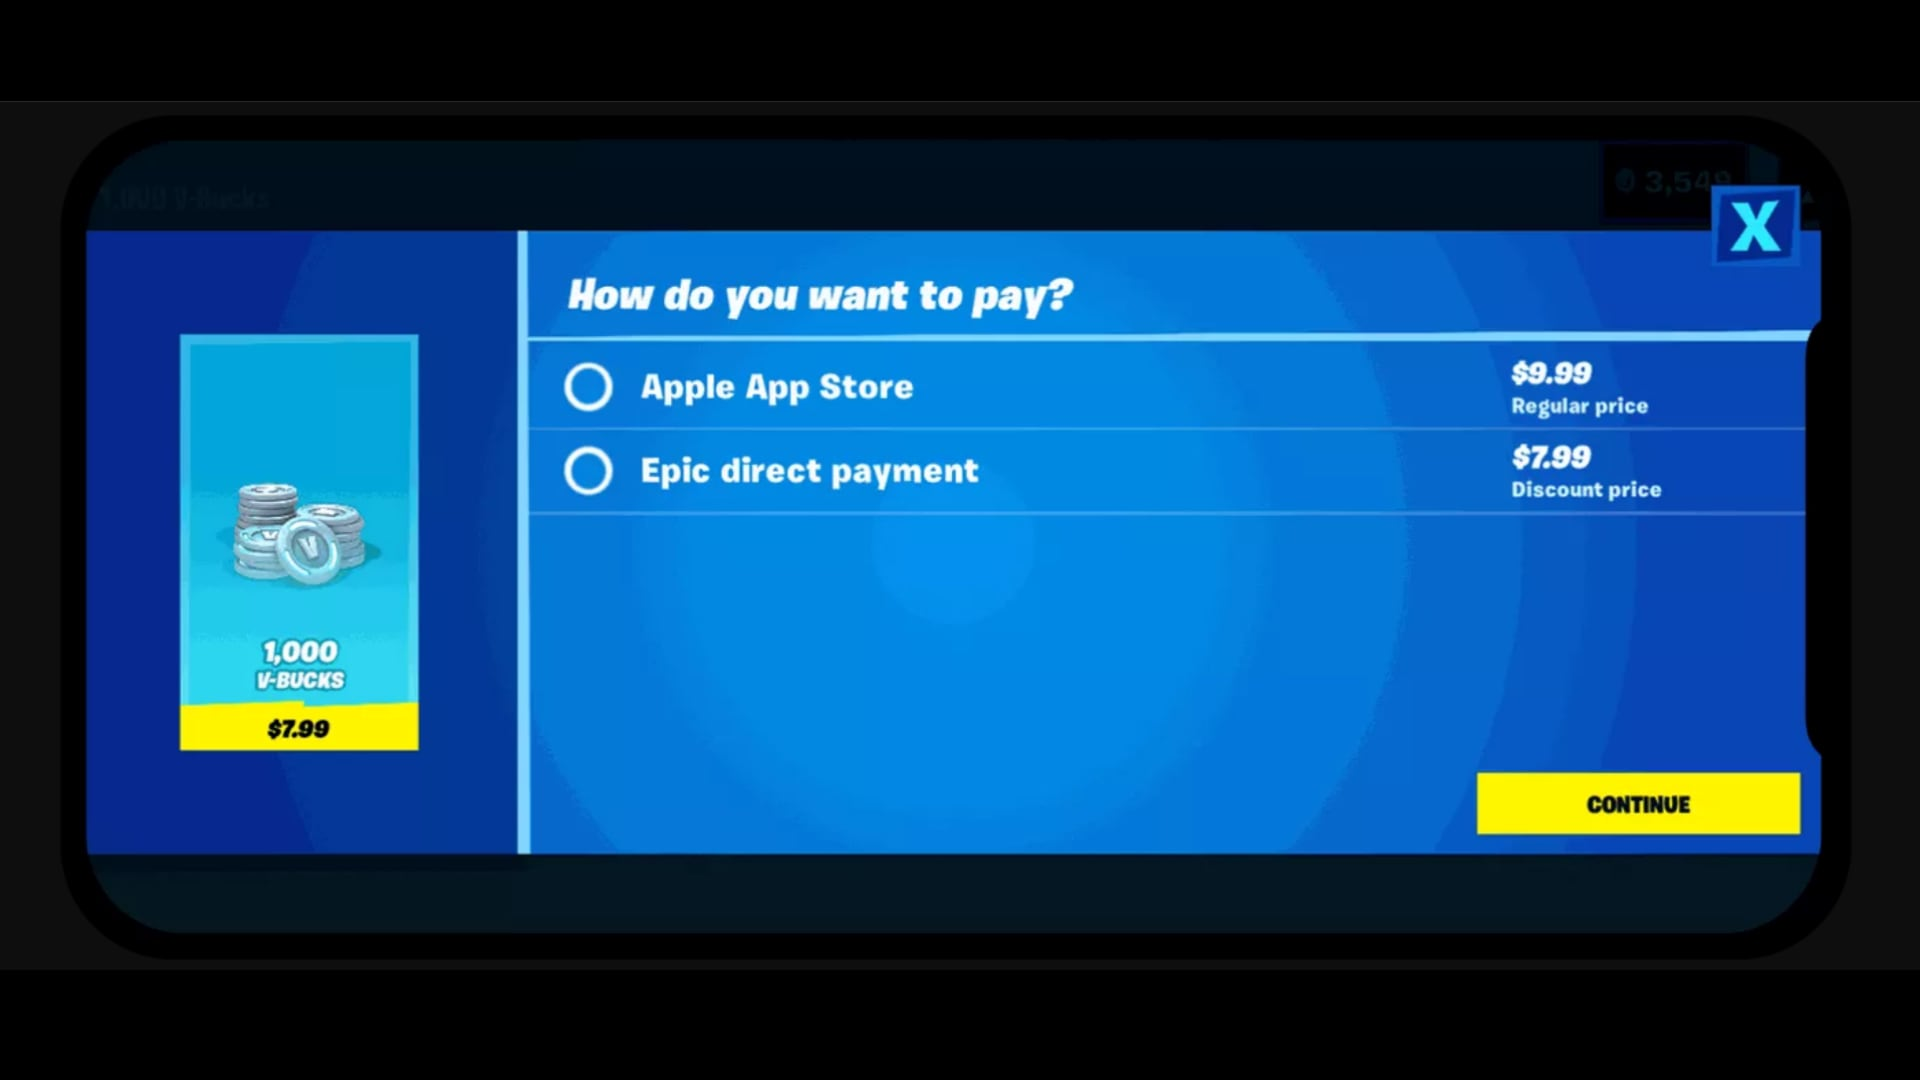 If you select the Epic direct payment, the game sends you to a payment screen where you can pay with either your credit card or through PayPal.